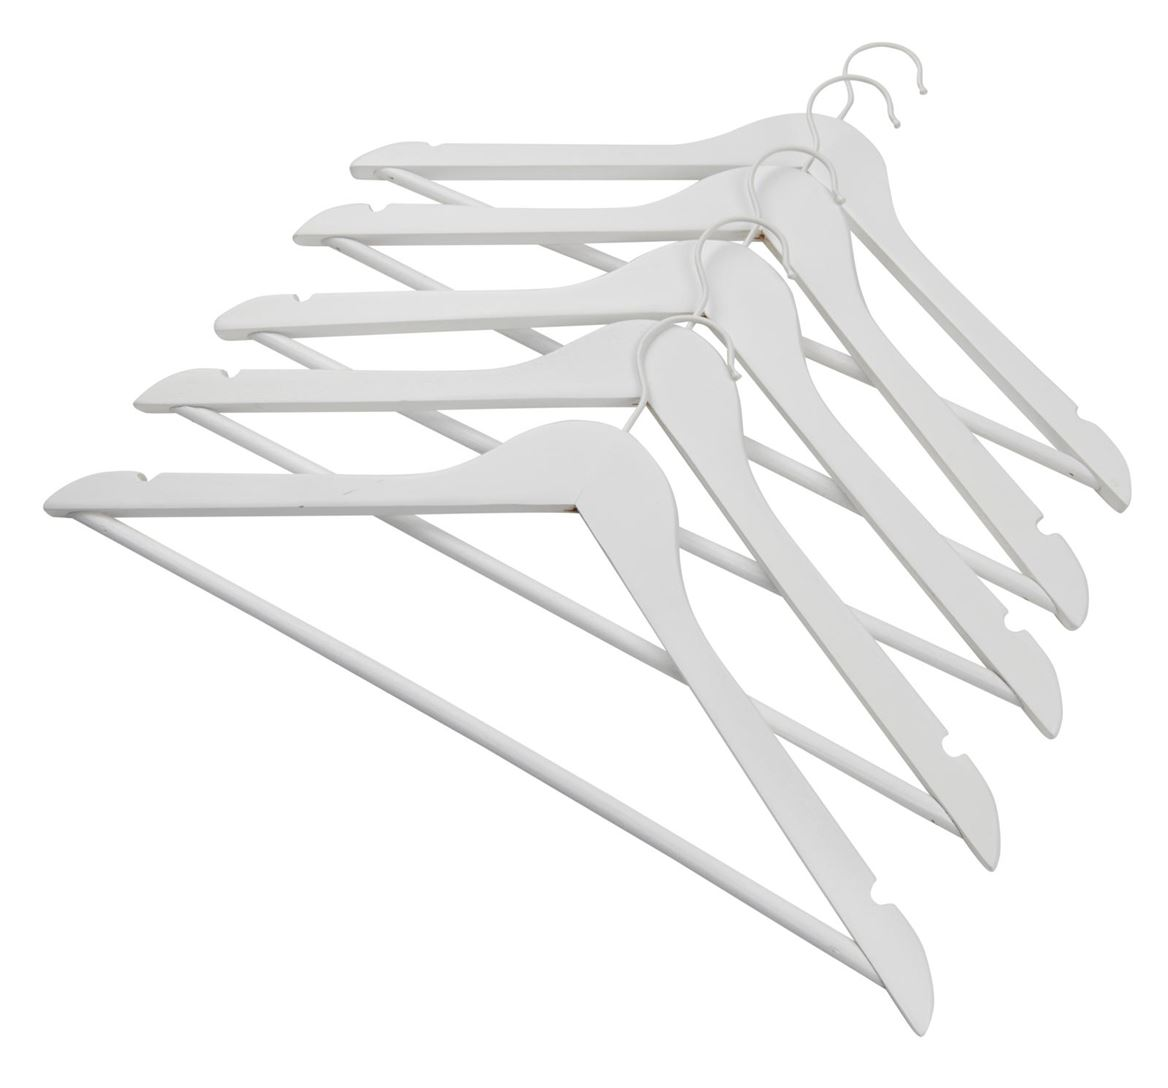 NEW WOOD Kleerhangers set van 5 wit H 23 x B 44,5 x D 1,2 cm_new-wood-kleerhangers-set-van-5-wit-h-23-x-b-44,5-x-d-1,2-cm